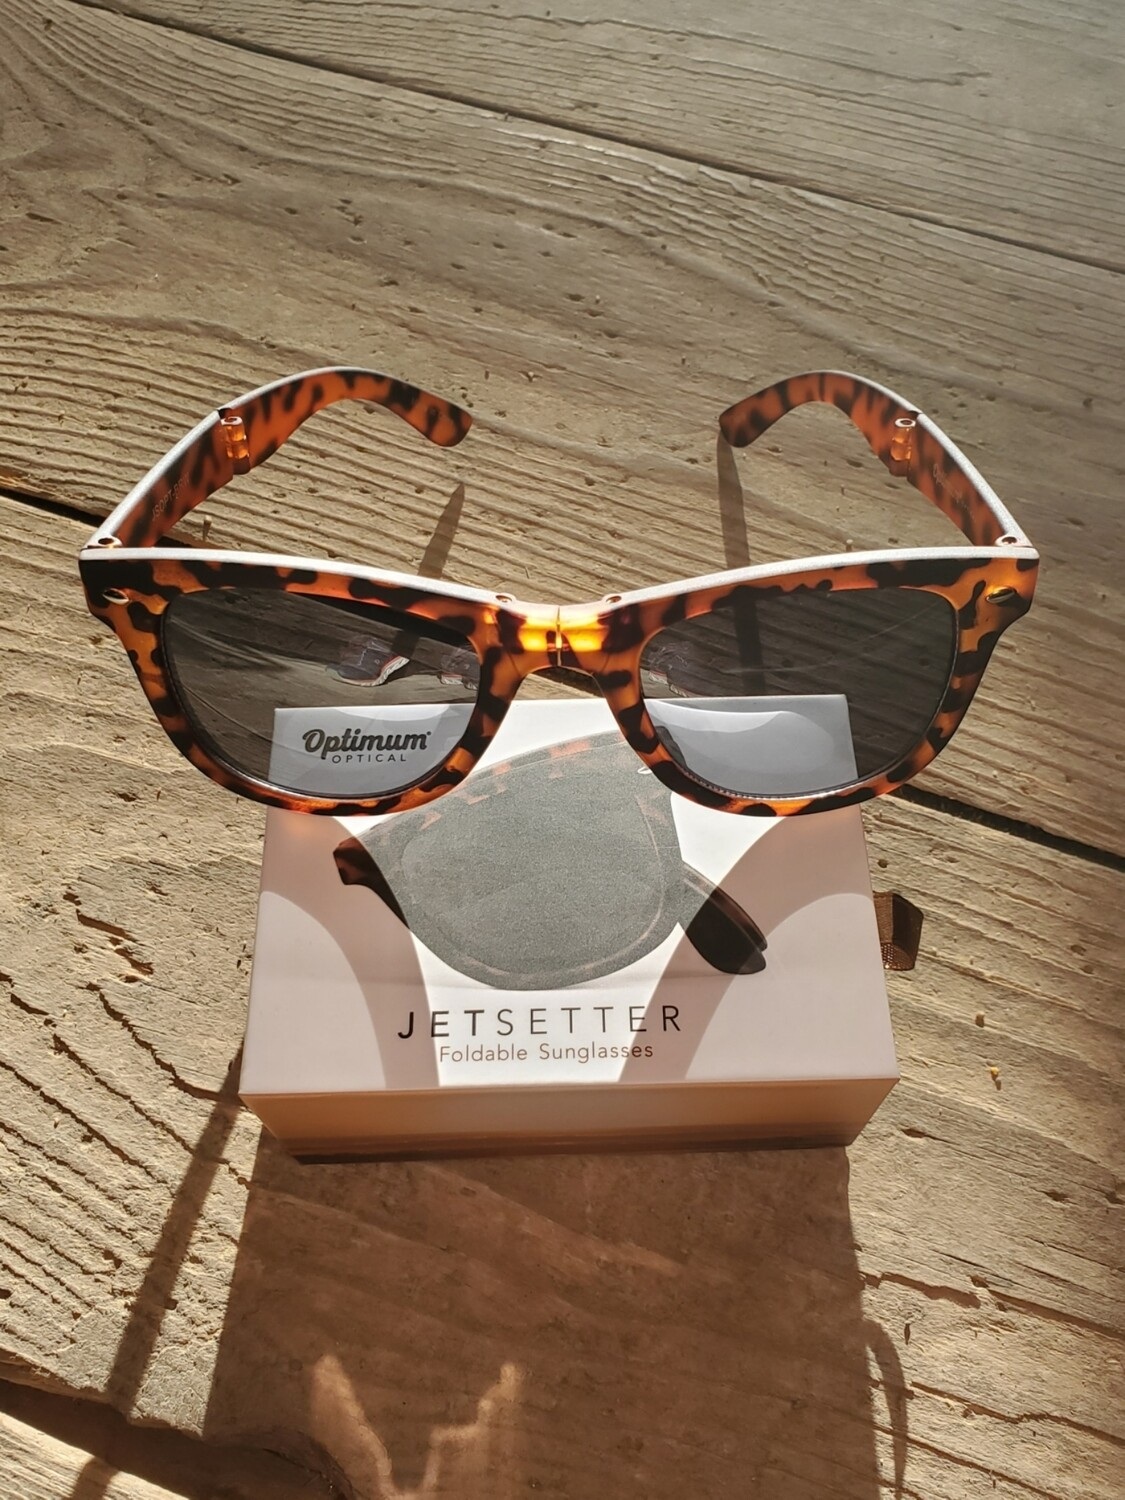 Jetsetter Foldable Sunglasses